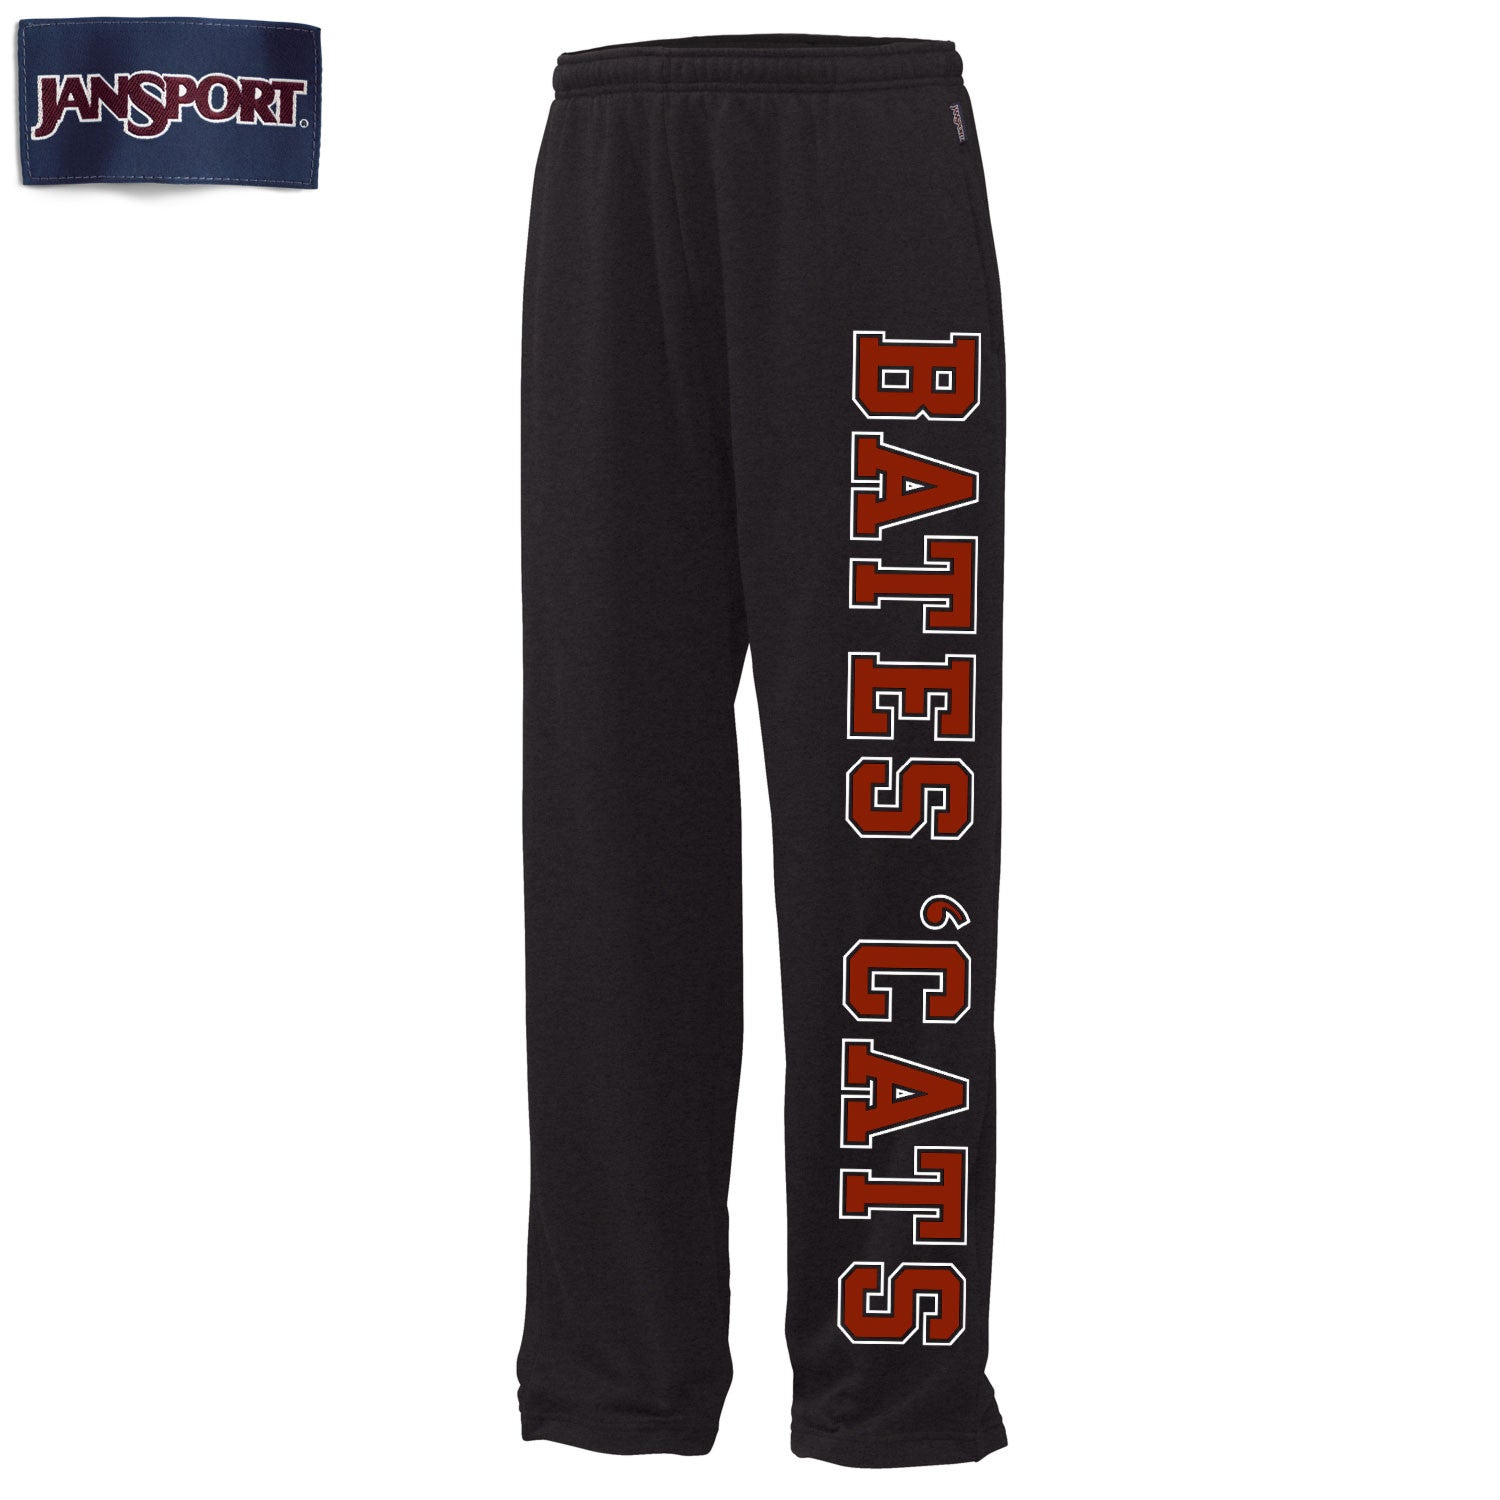 Open-bottom Fleece Sweatpants with Pockets - jansport, Men's, Pants